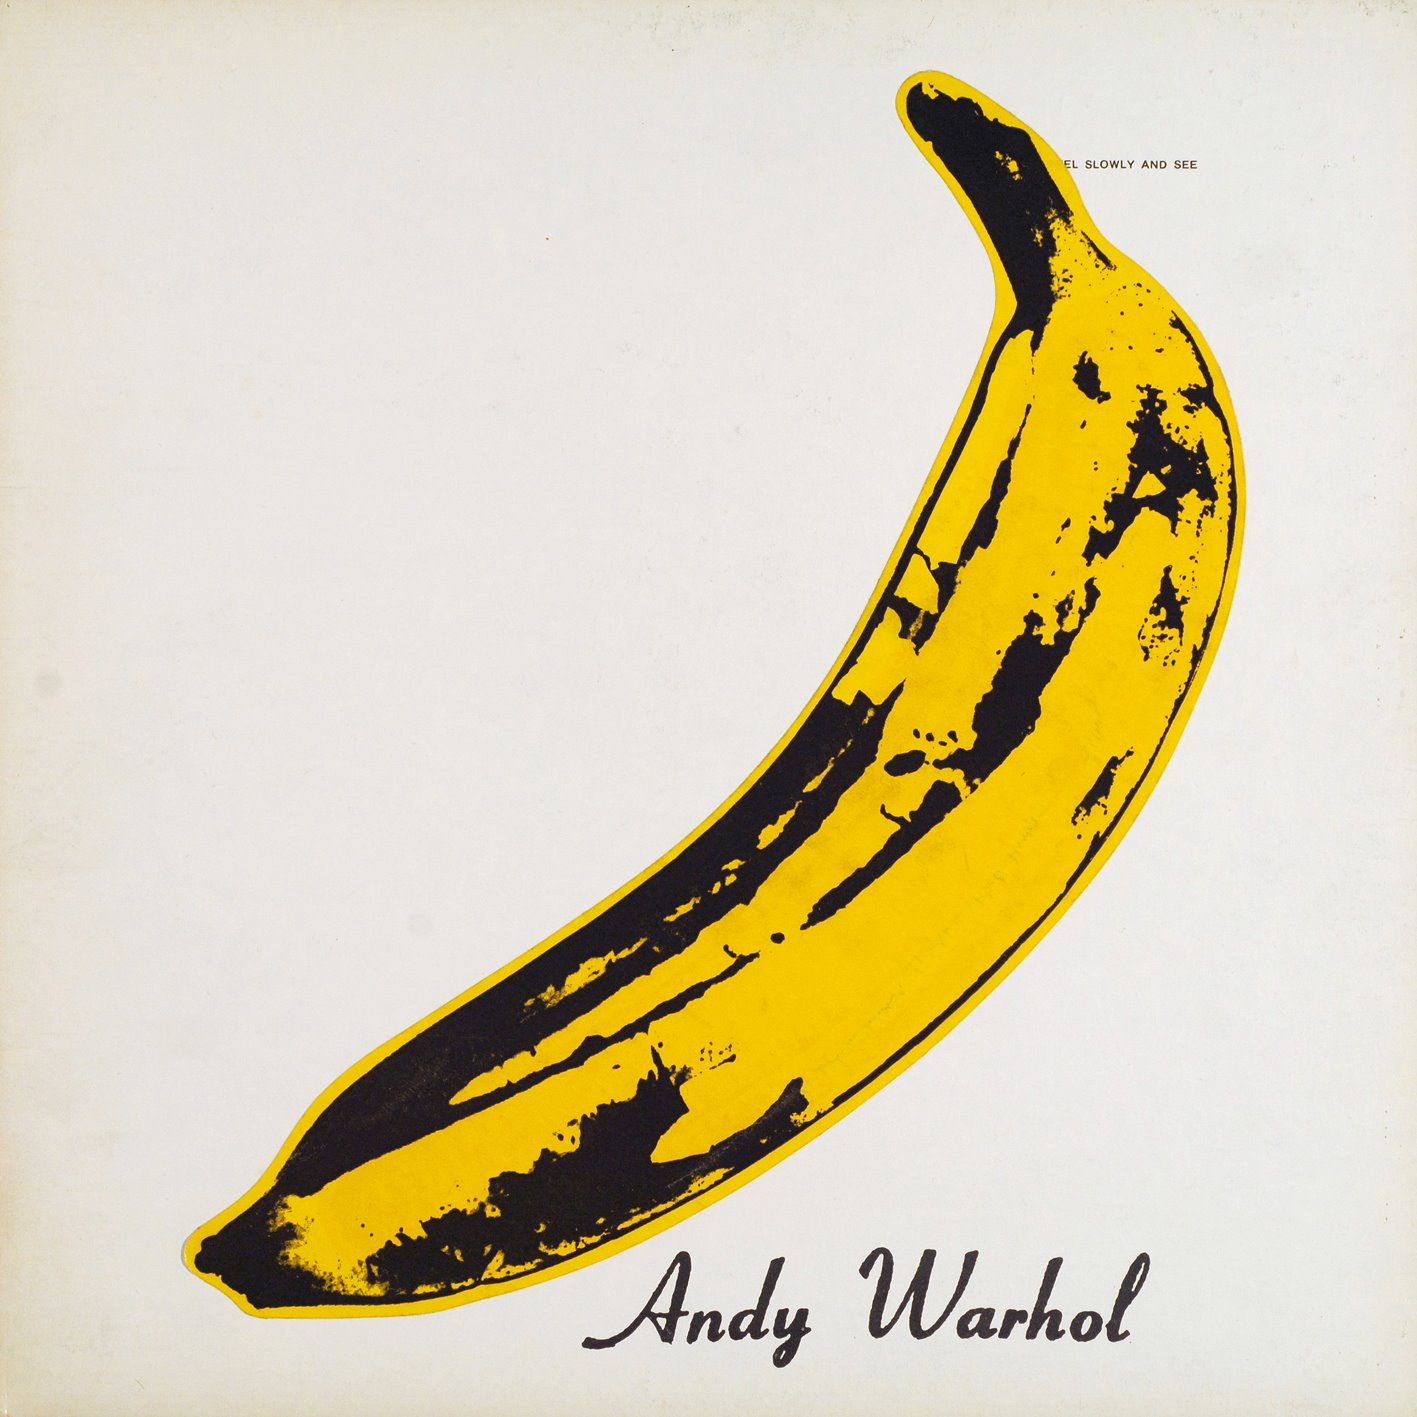 The Pop Art of Andy WarholAndy Warhol Pop Art